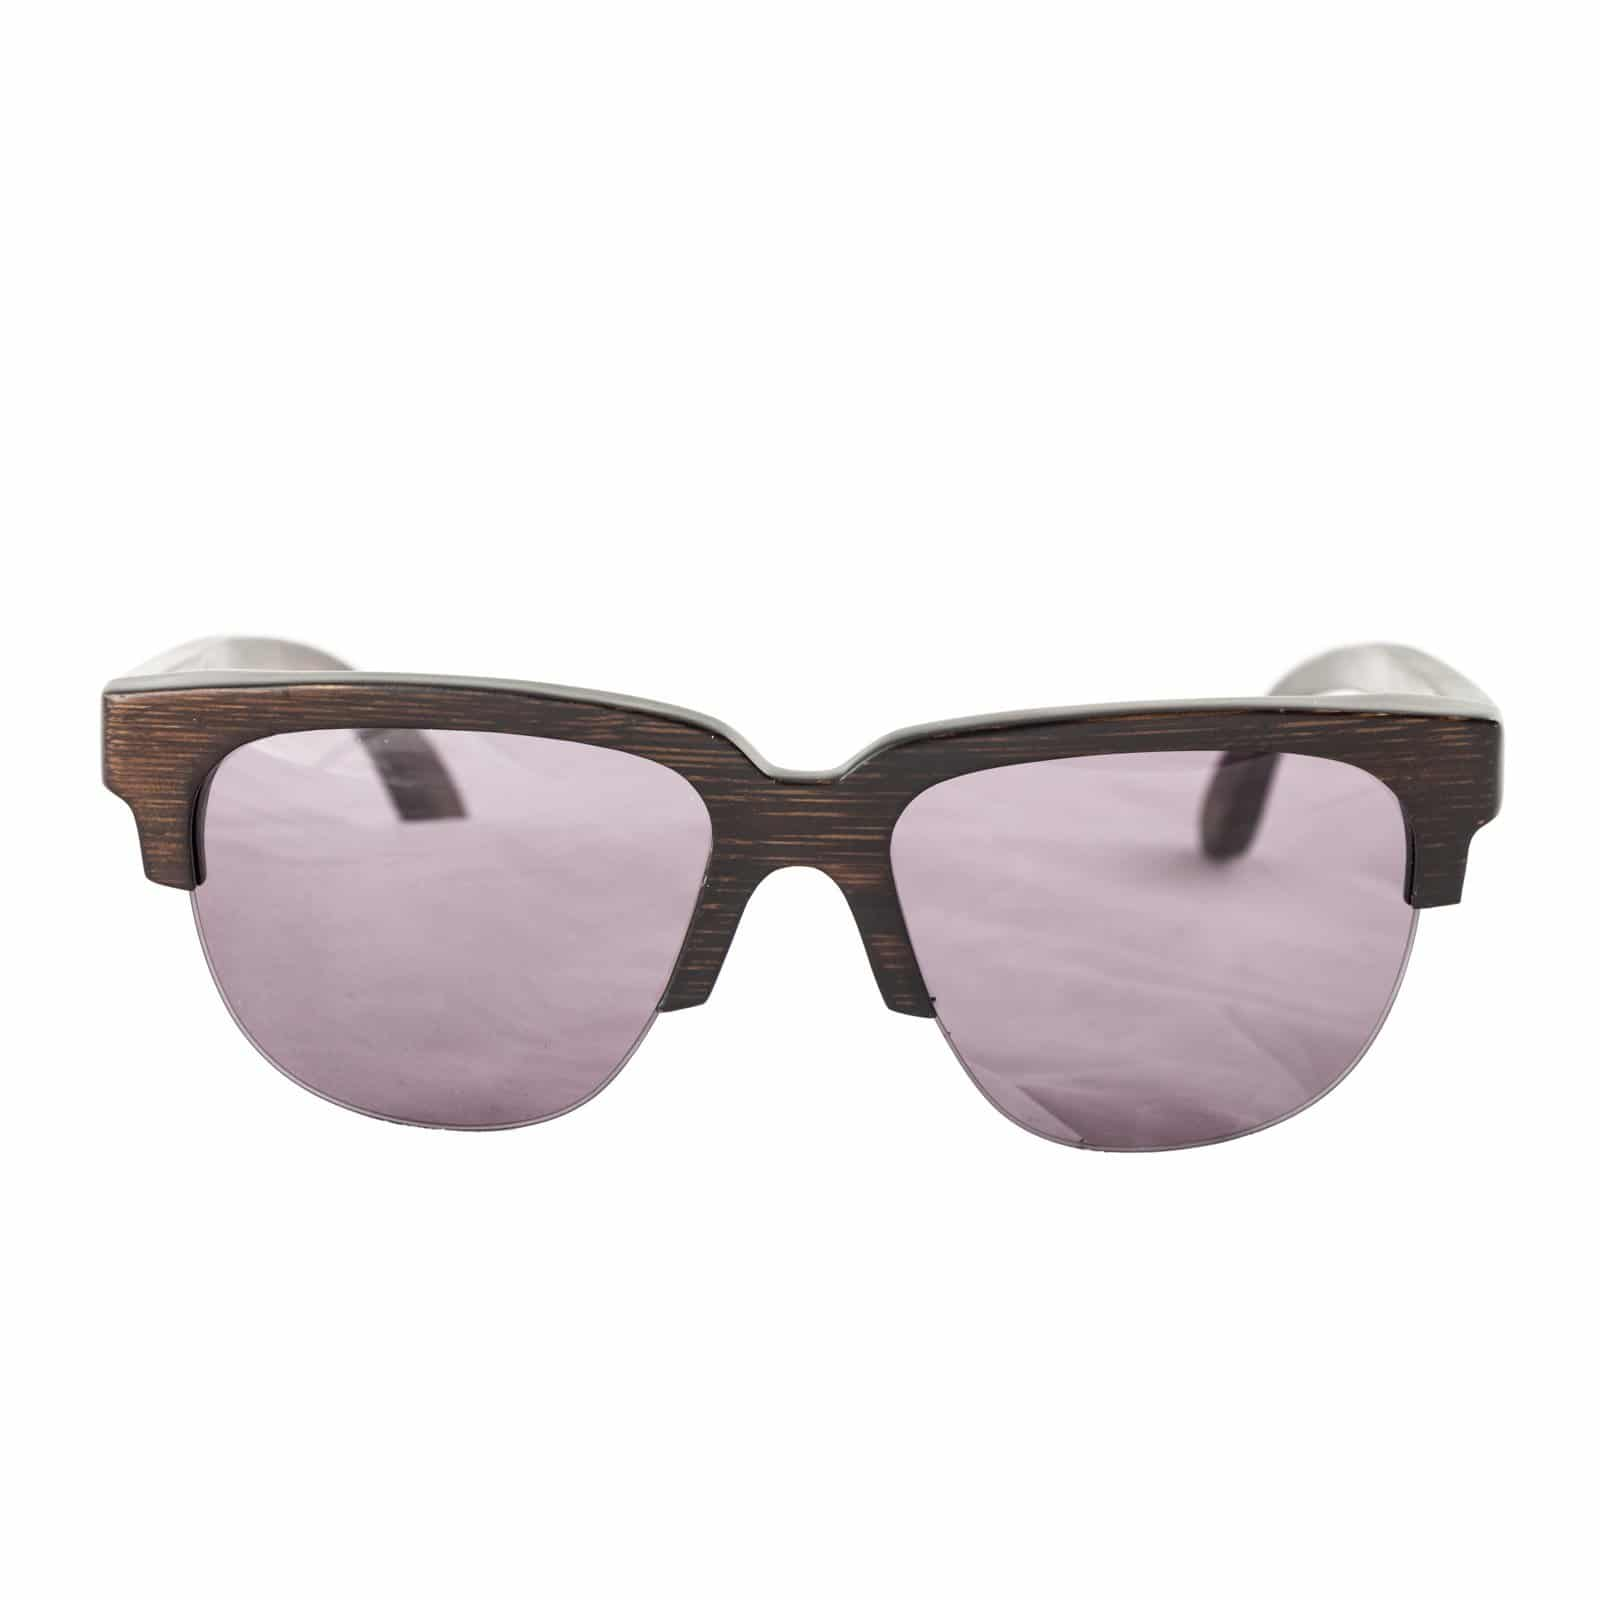 New wooden shades in stock!